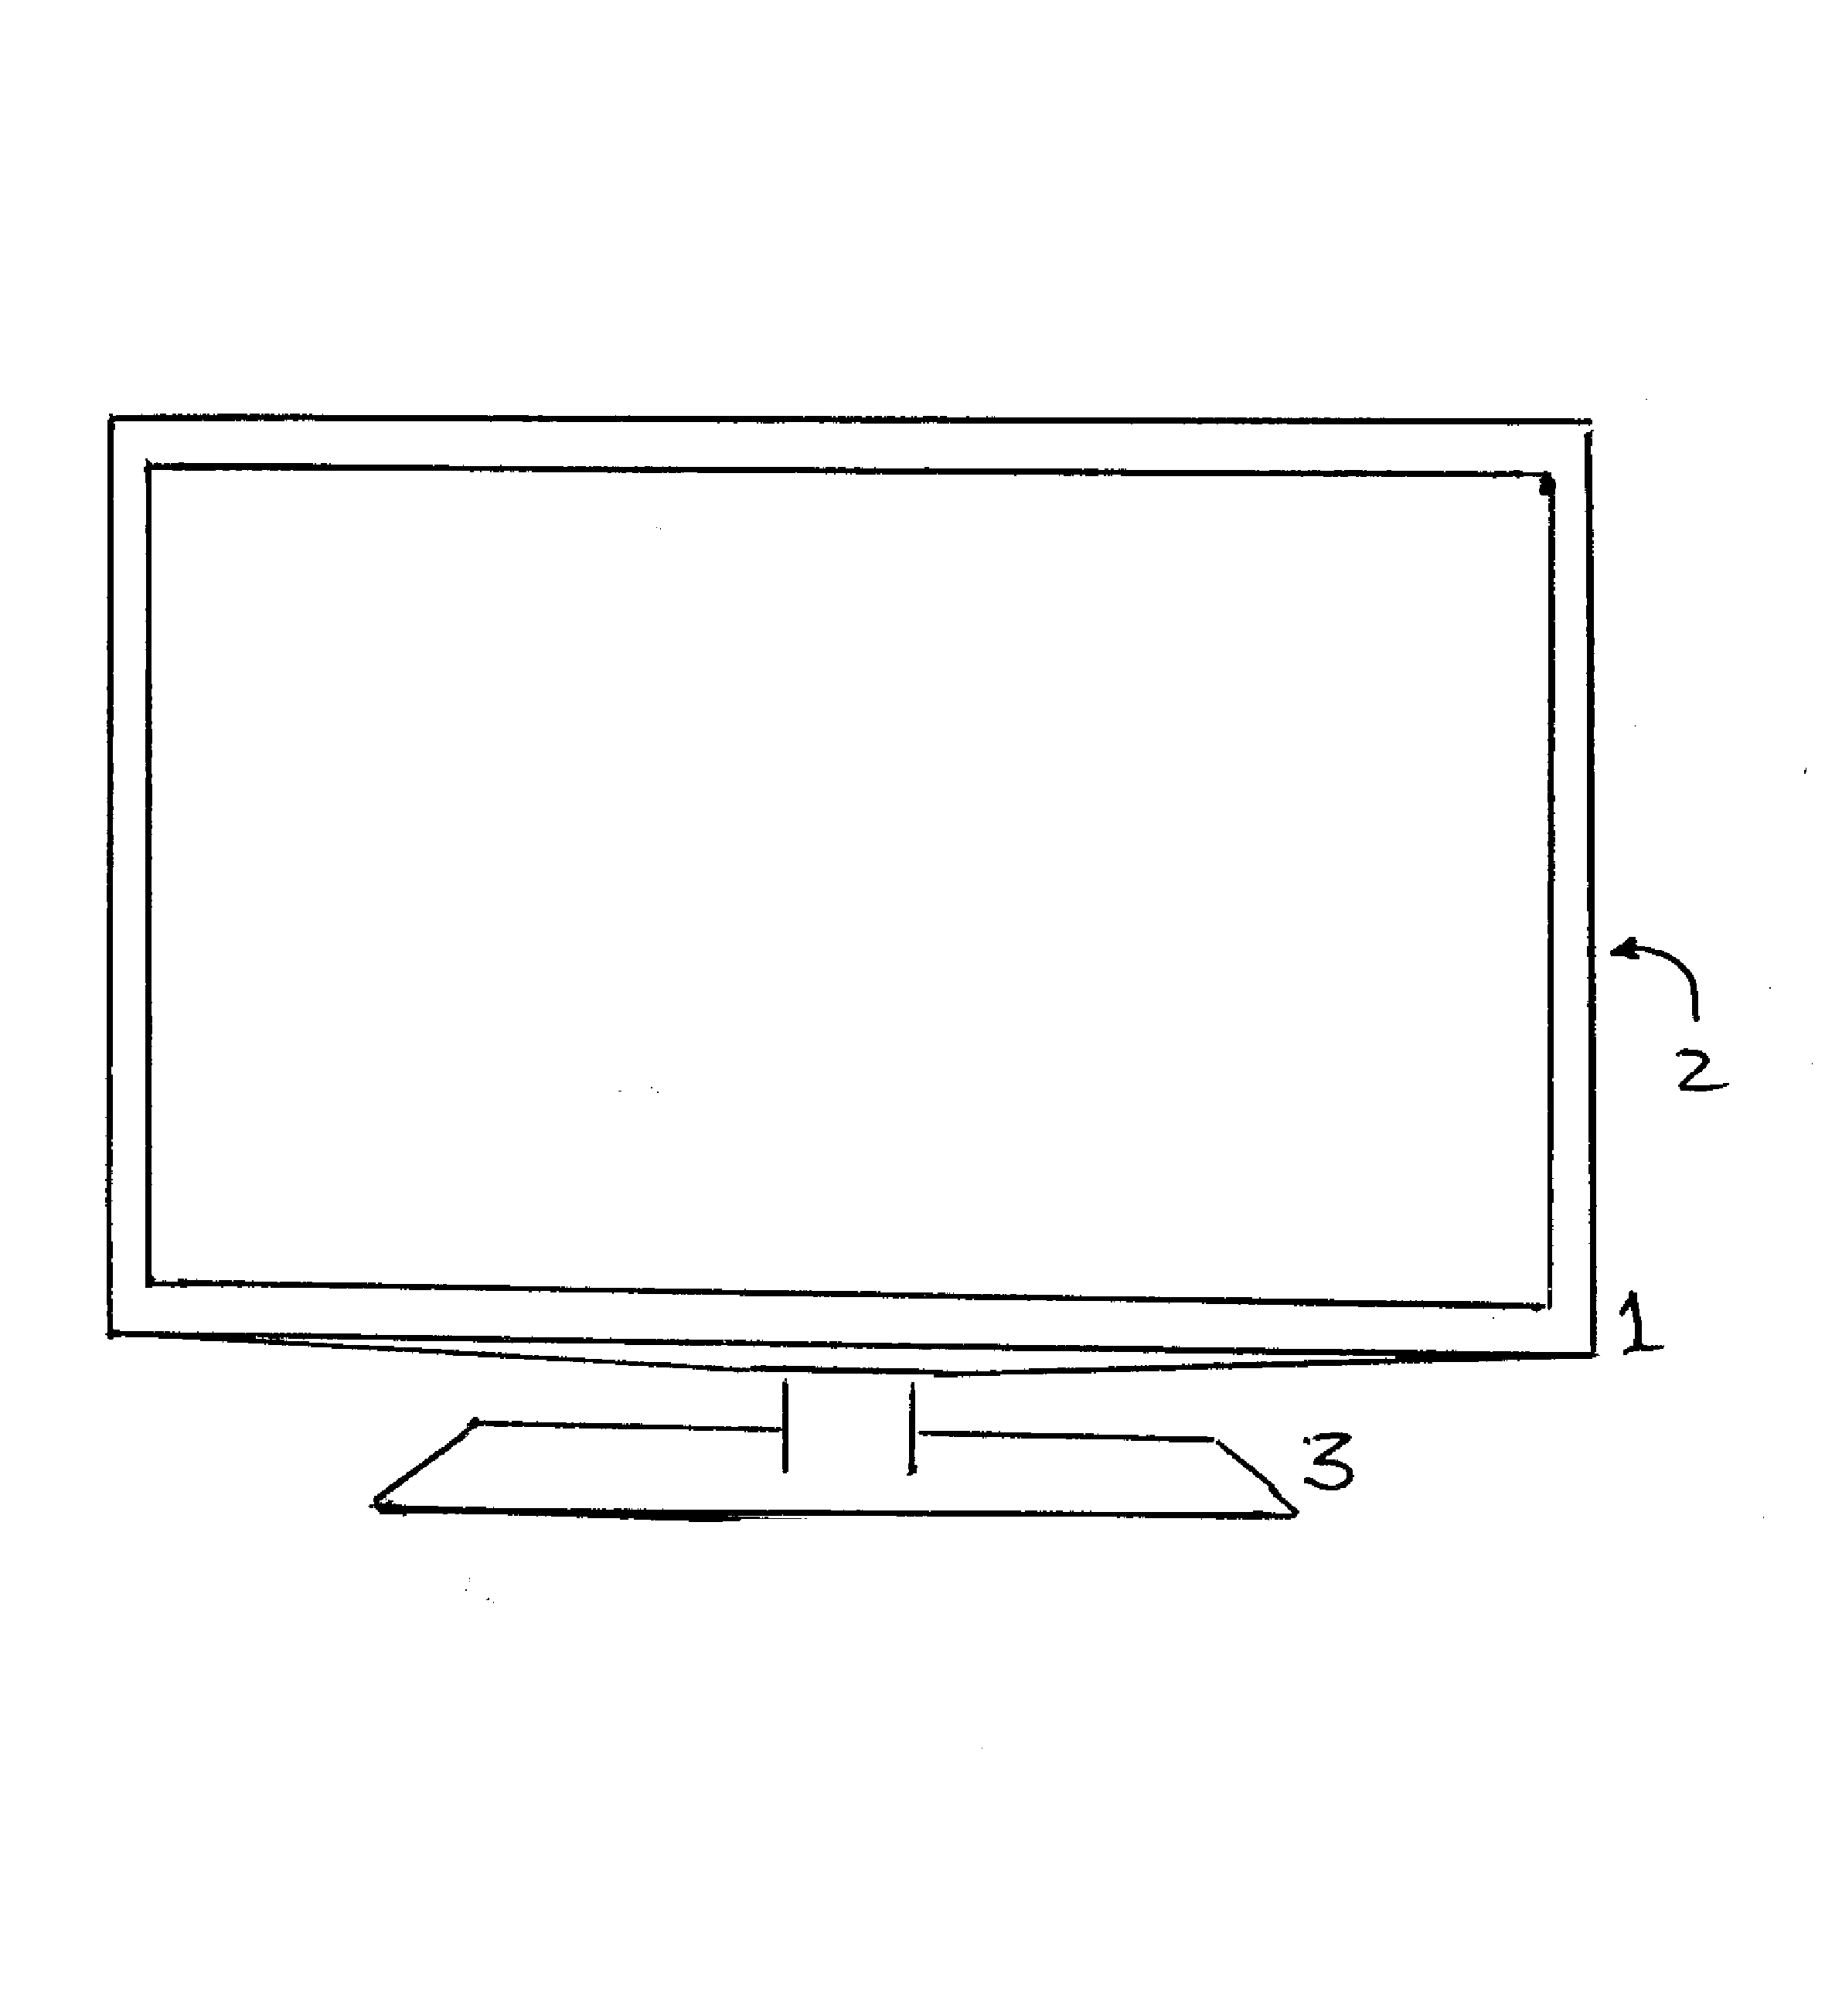 Toshiba model 46L5200U lcd television genuine parts